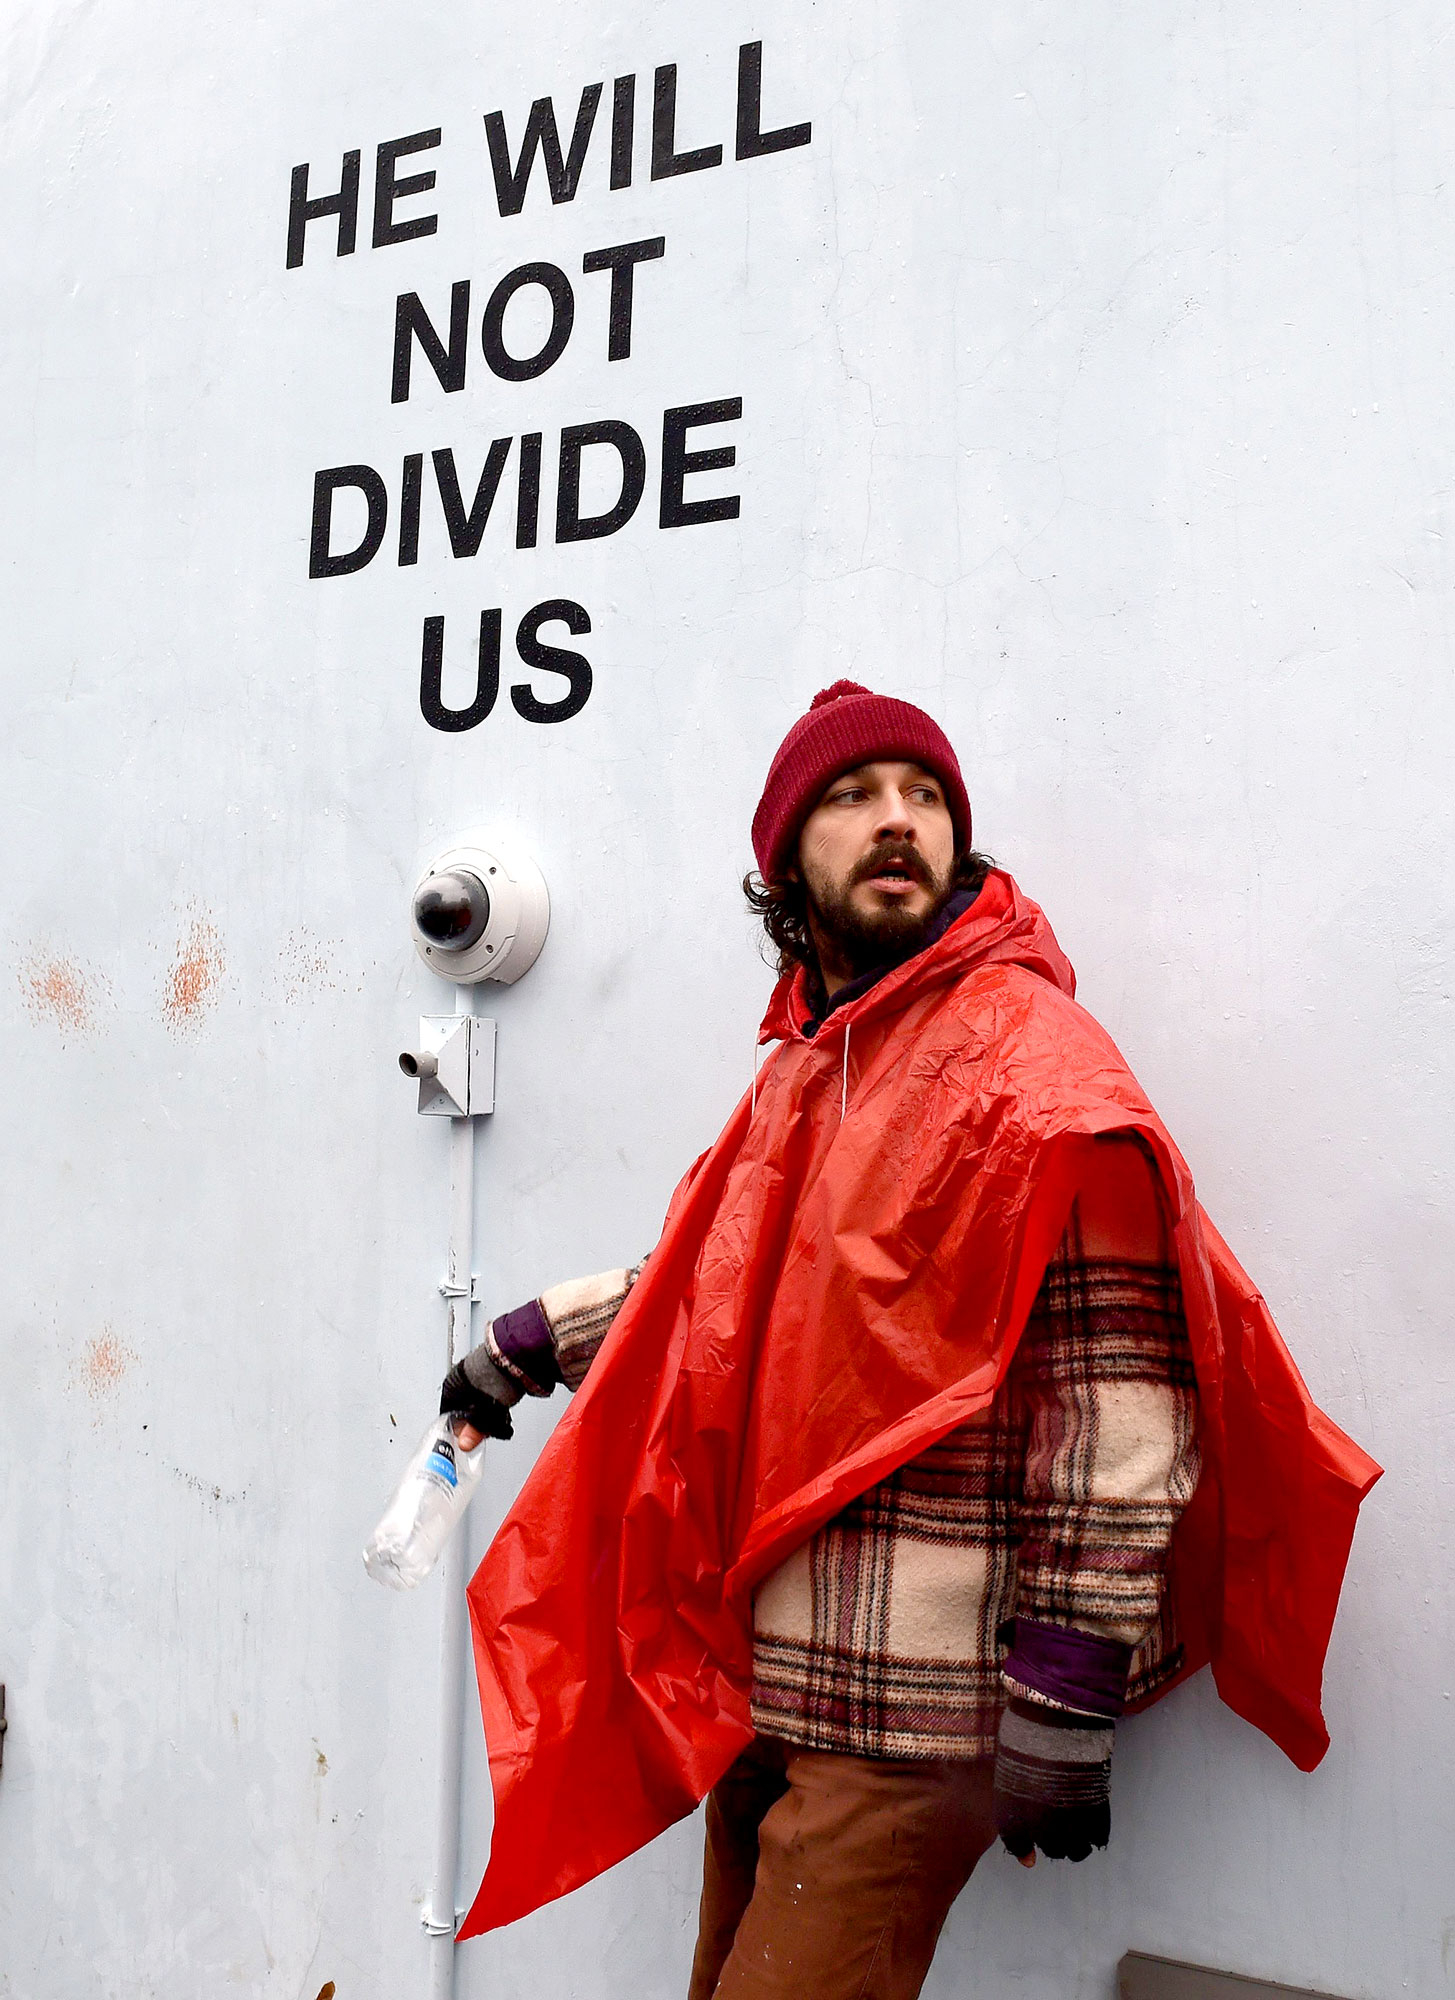 US actor Shia LaBeouf(L)is seen during his He Will Not Divide Us livestream outside the Museum of the Moving Image in Astoria, in the Queens borough of New York January 24, 2017 as a protest against President Donald Trump.